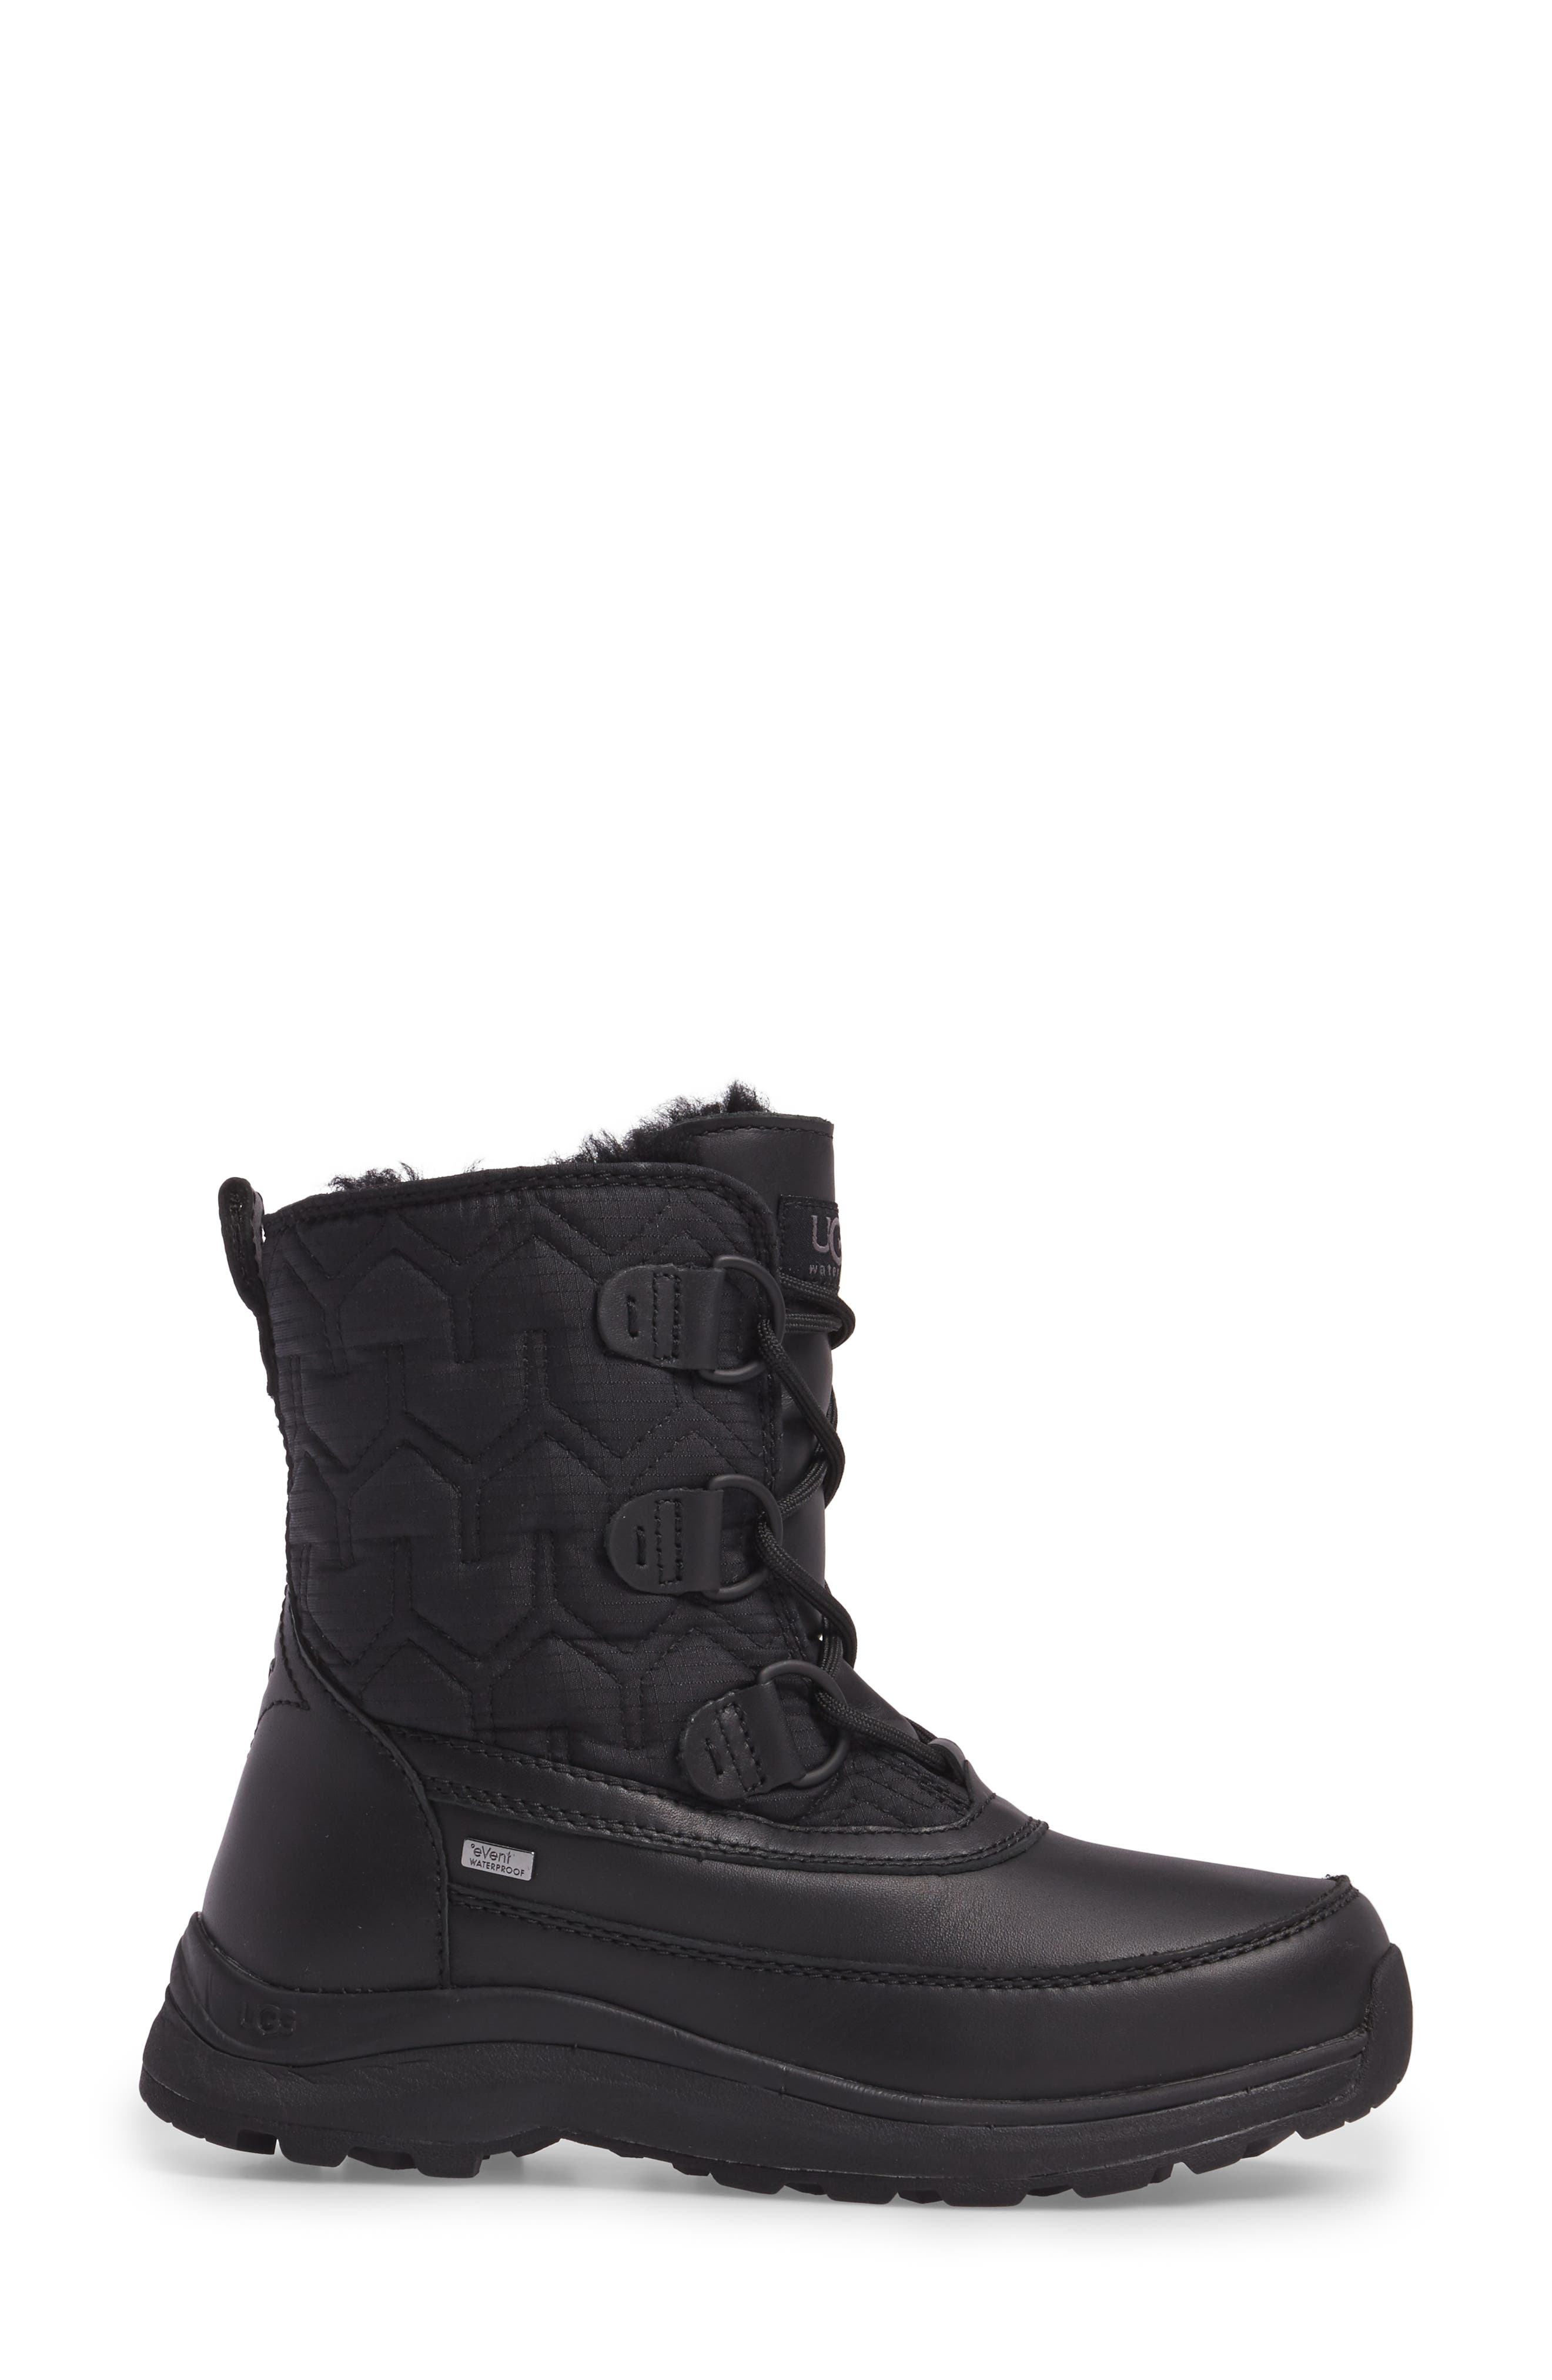 Alternate Image 3  - UGG® Lachlan Waterproof Insulated Snow Boot (Women)